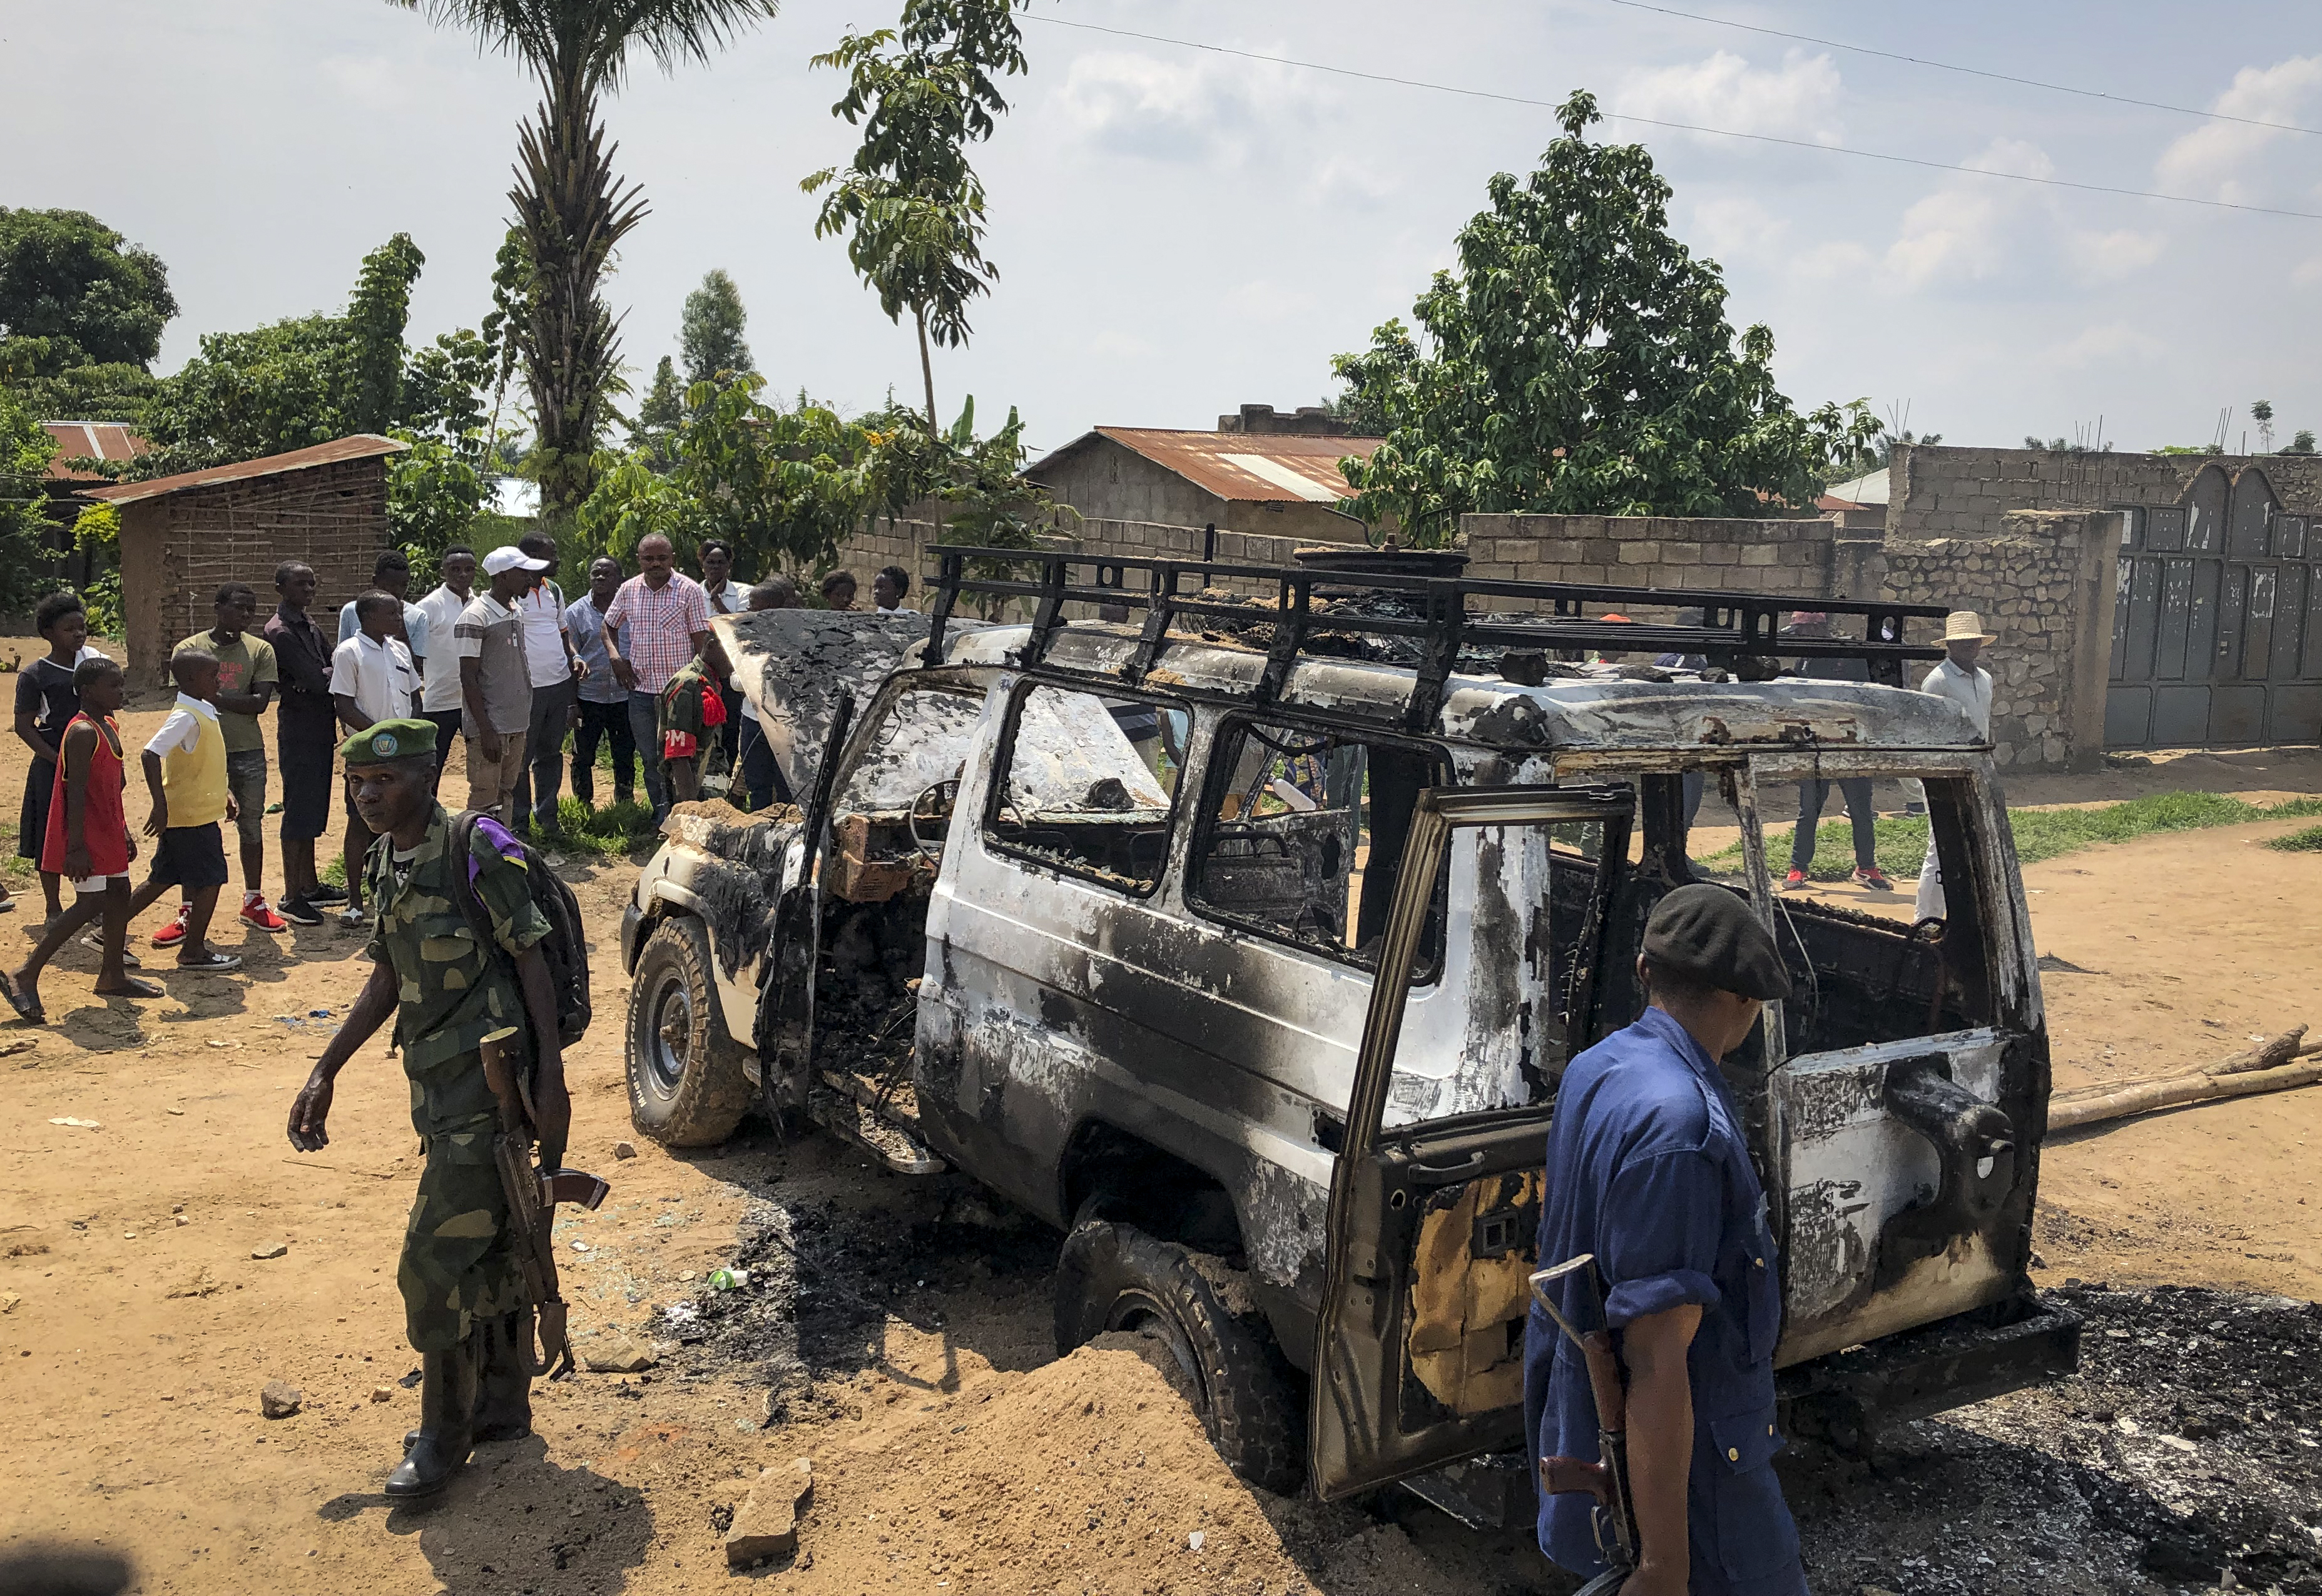 The security forces in Konstanka take part in the scene after the vehicle was attacked by the team responsible for the ebol of the health ministry in Benin, northeastern Congo, on Monday, June 24, 2019.